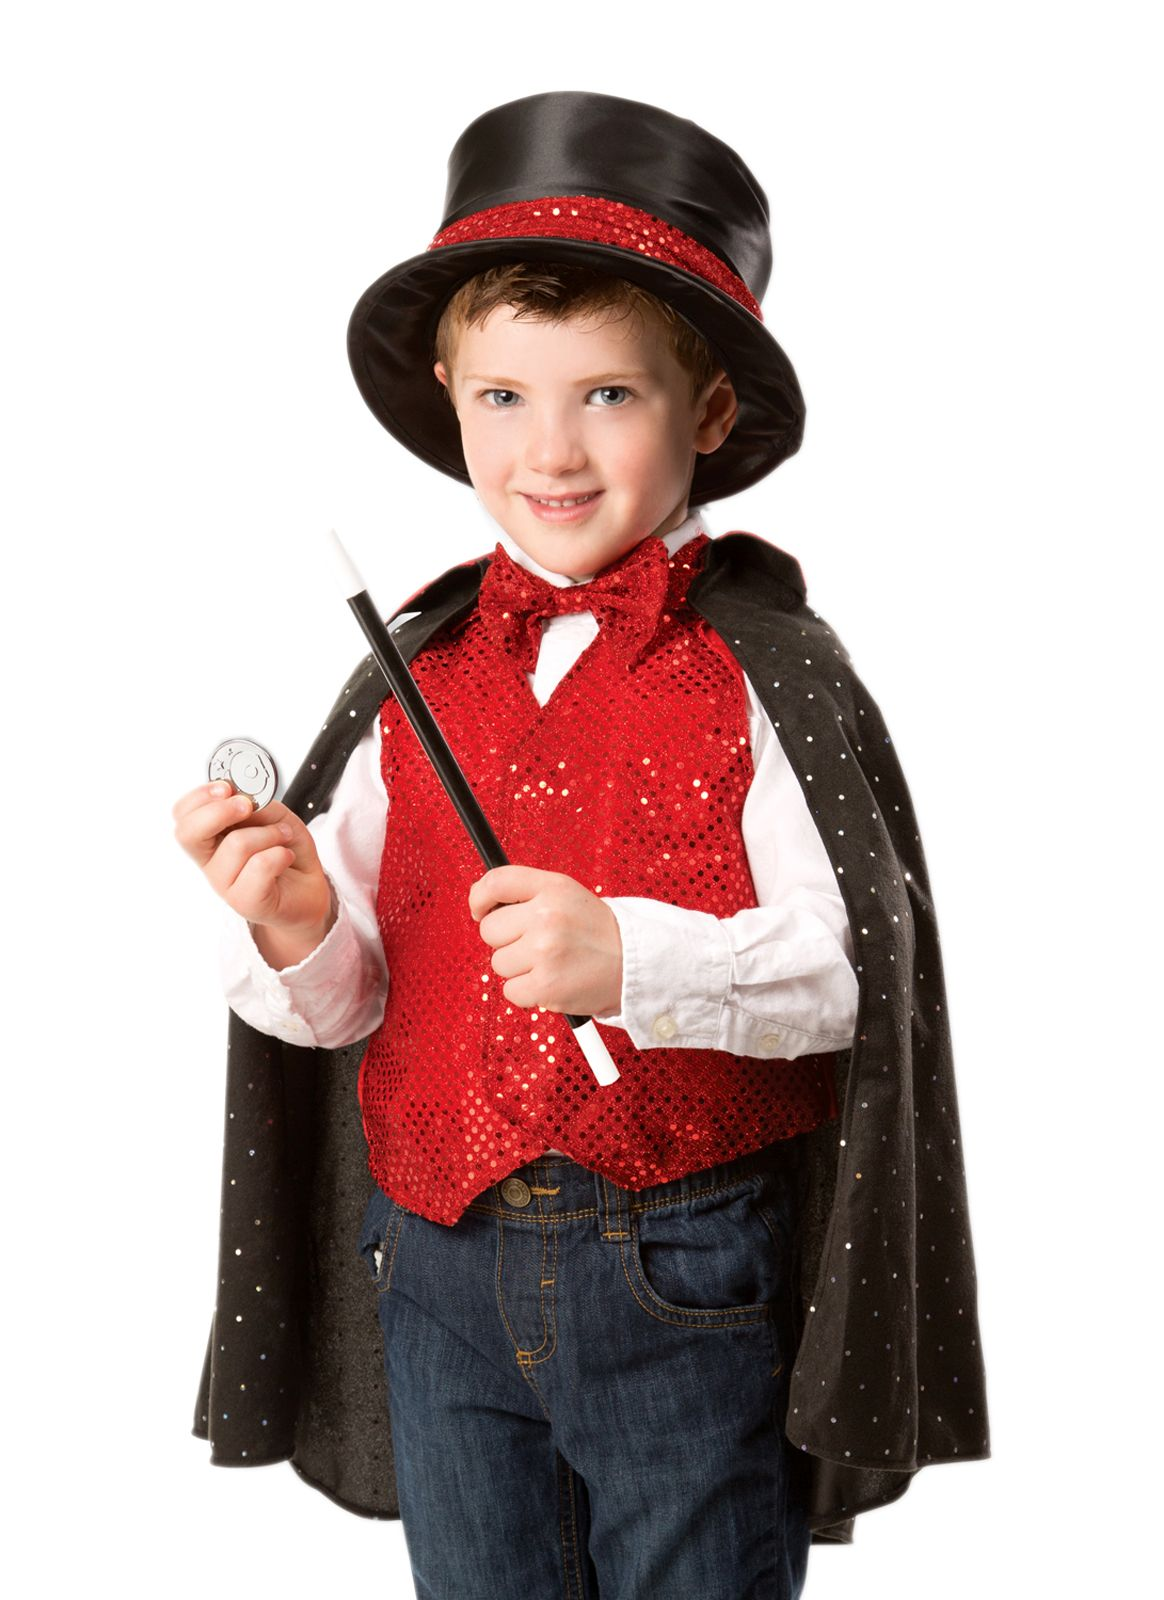 For your child that loves to play with magic give them the Magician Role Play Costume Set to embody their new role! Shop this set at Melissa u0026 Doug.  sc 1 st  Pinterest & Childu0027s Magician Costume with Top Hat | fall | Pinterest | Costumes ...